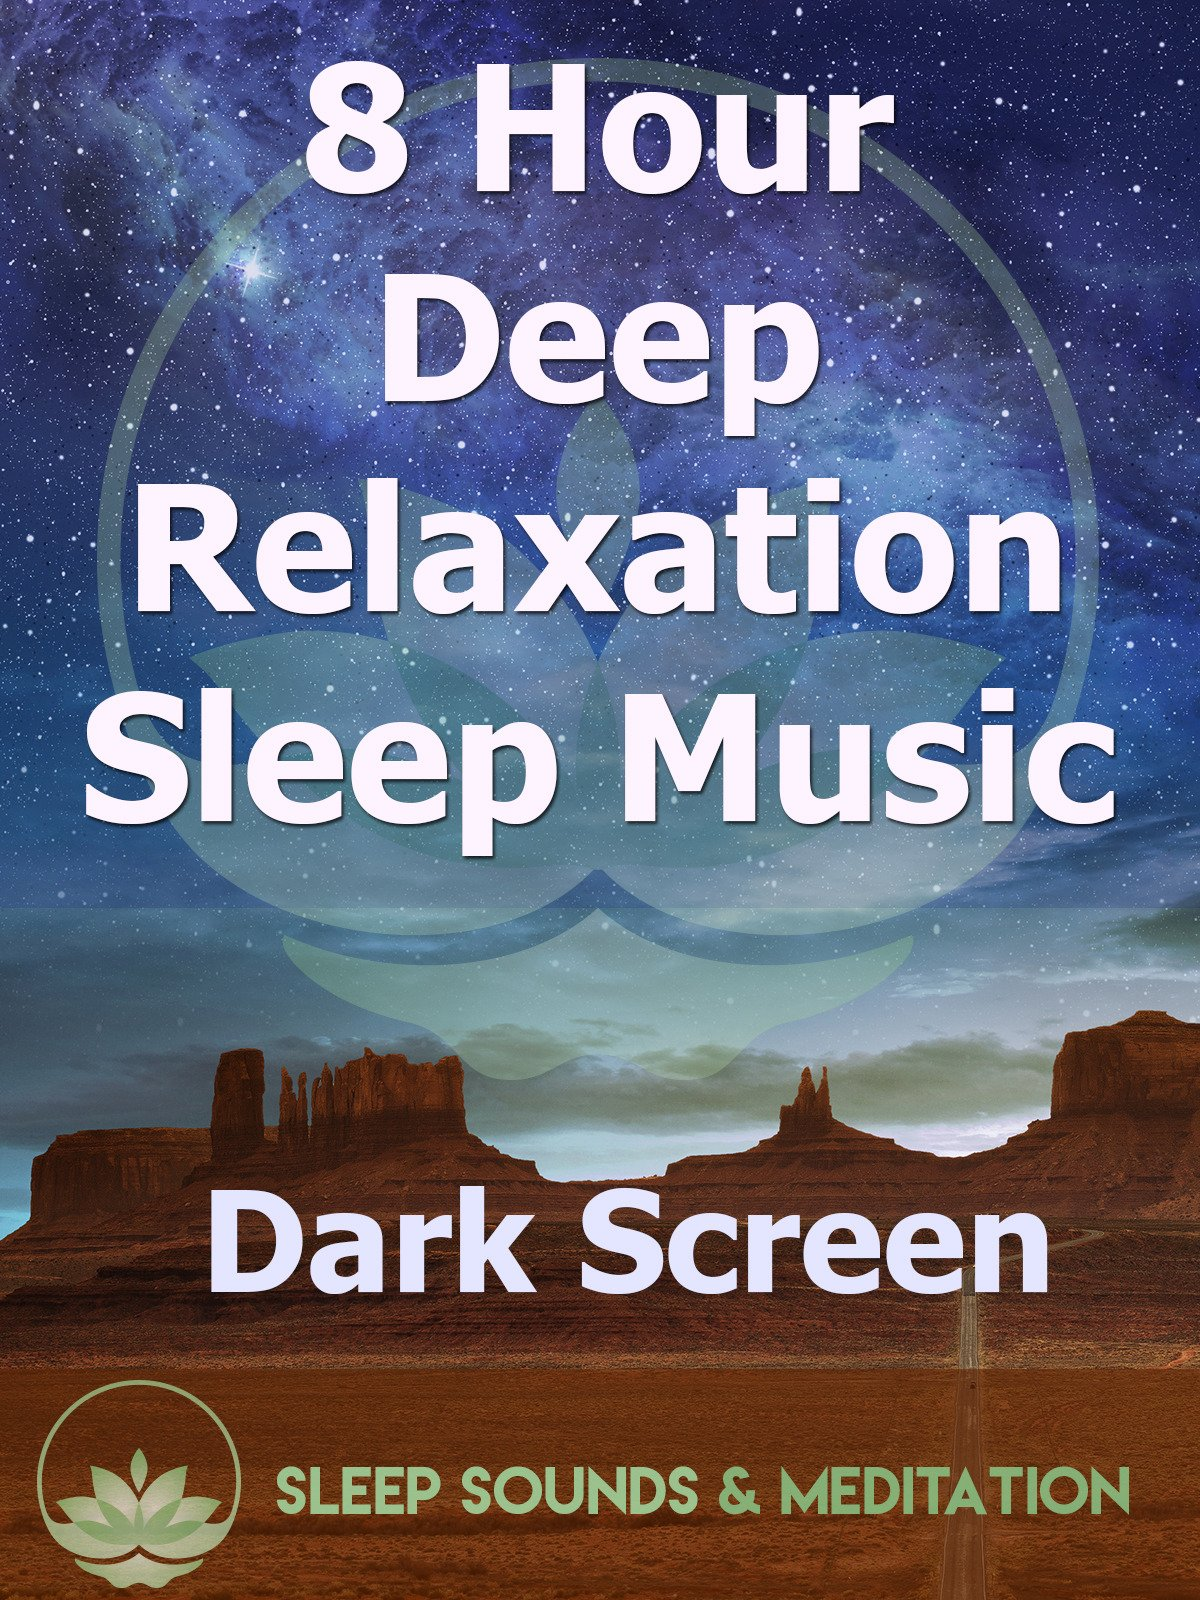 8 Hour Deep Relaxation Sleep Music, Dark Screen